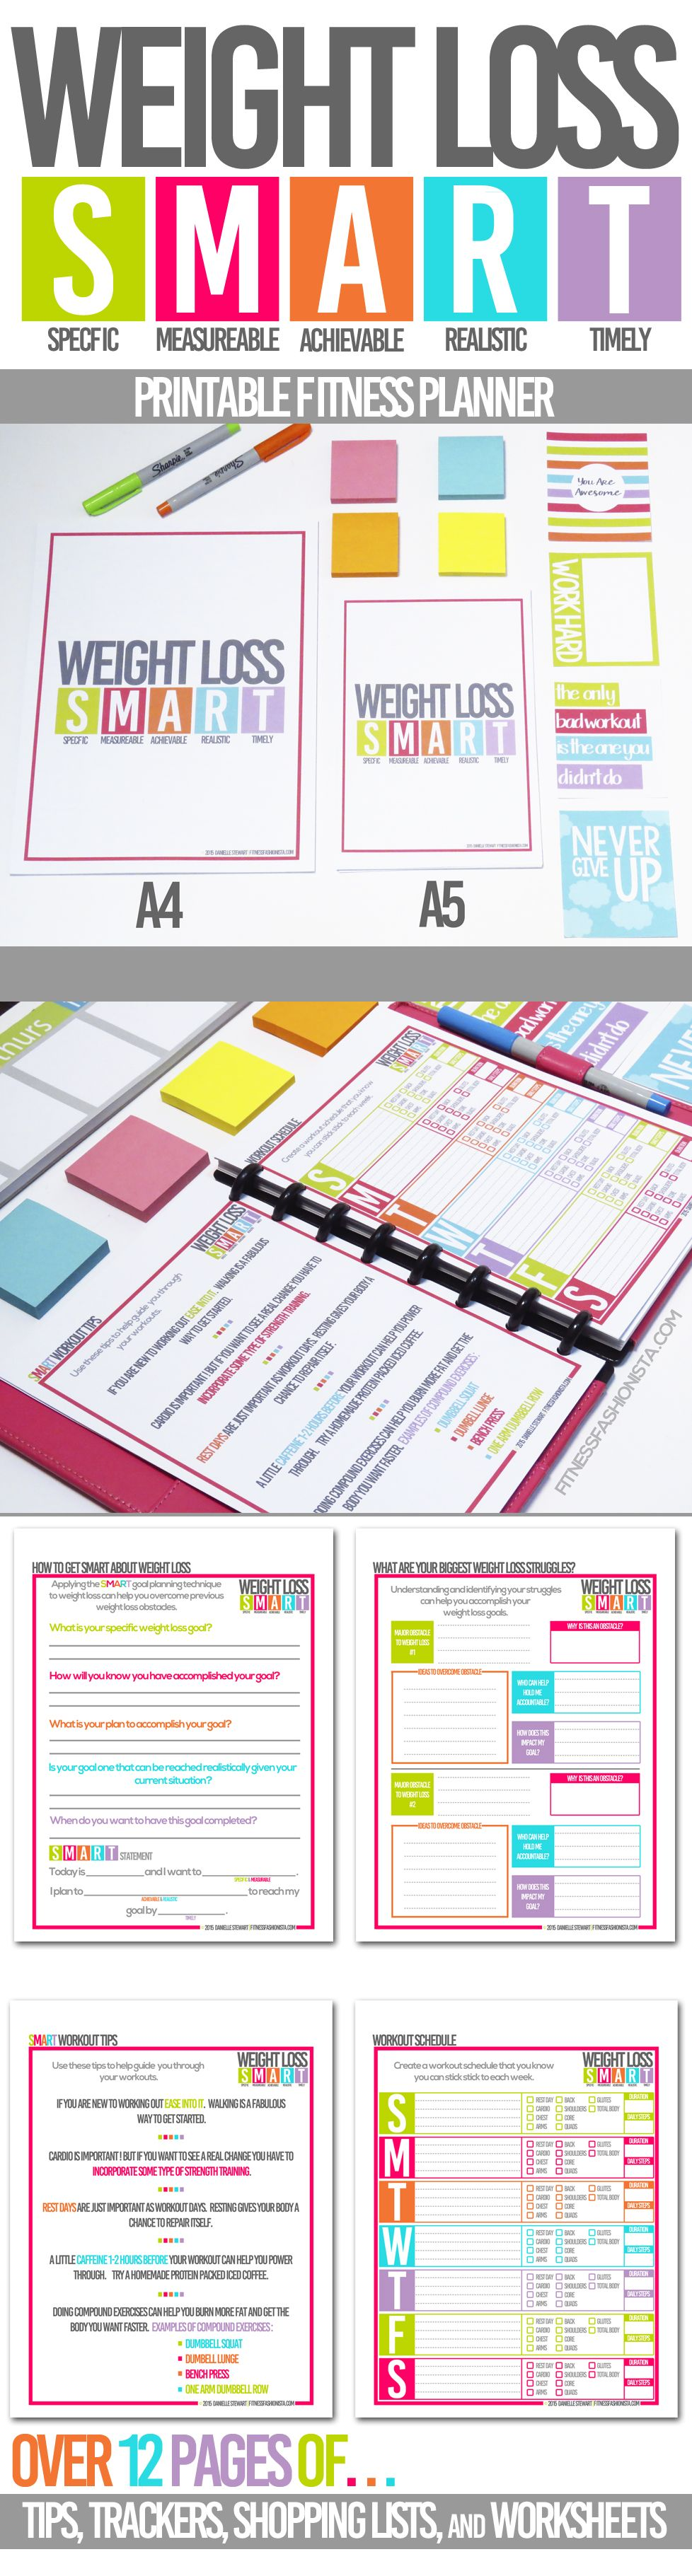 SMART Weight Loss printable Fitness Planner to help keep ...